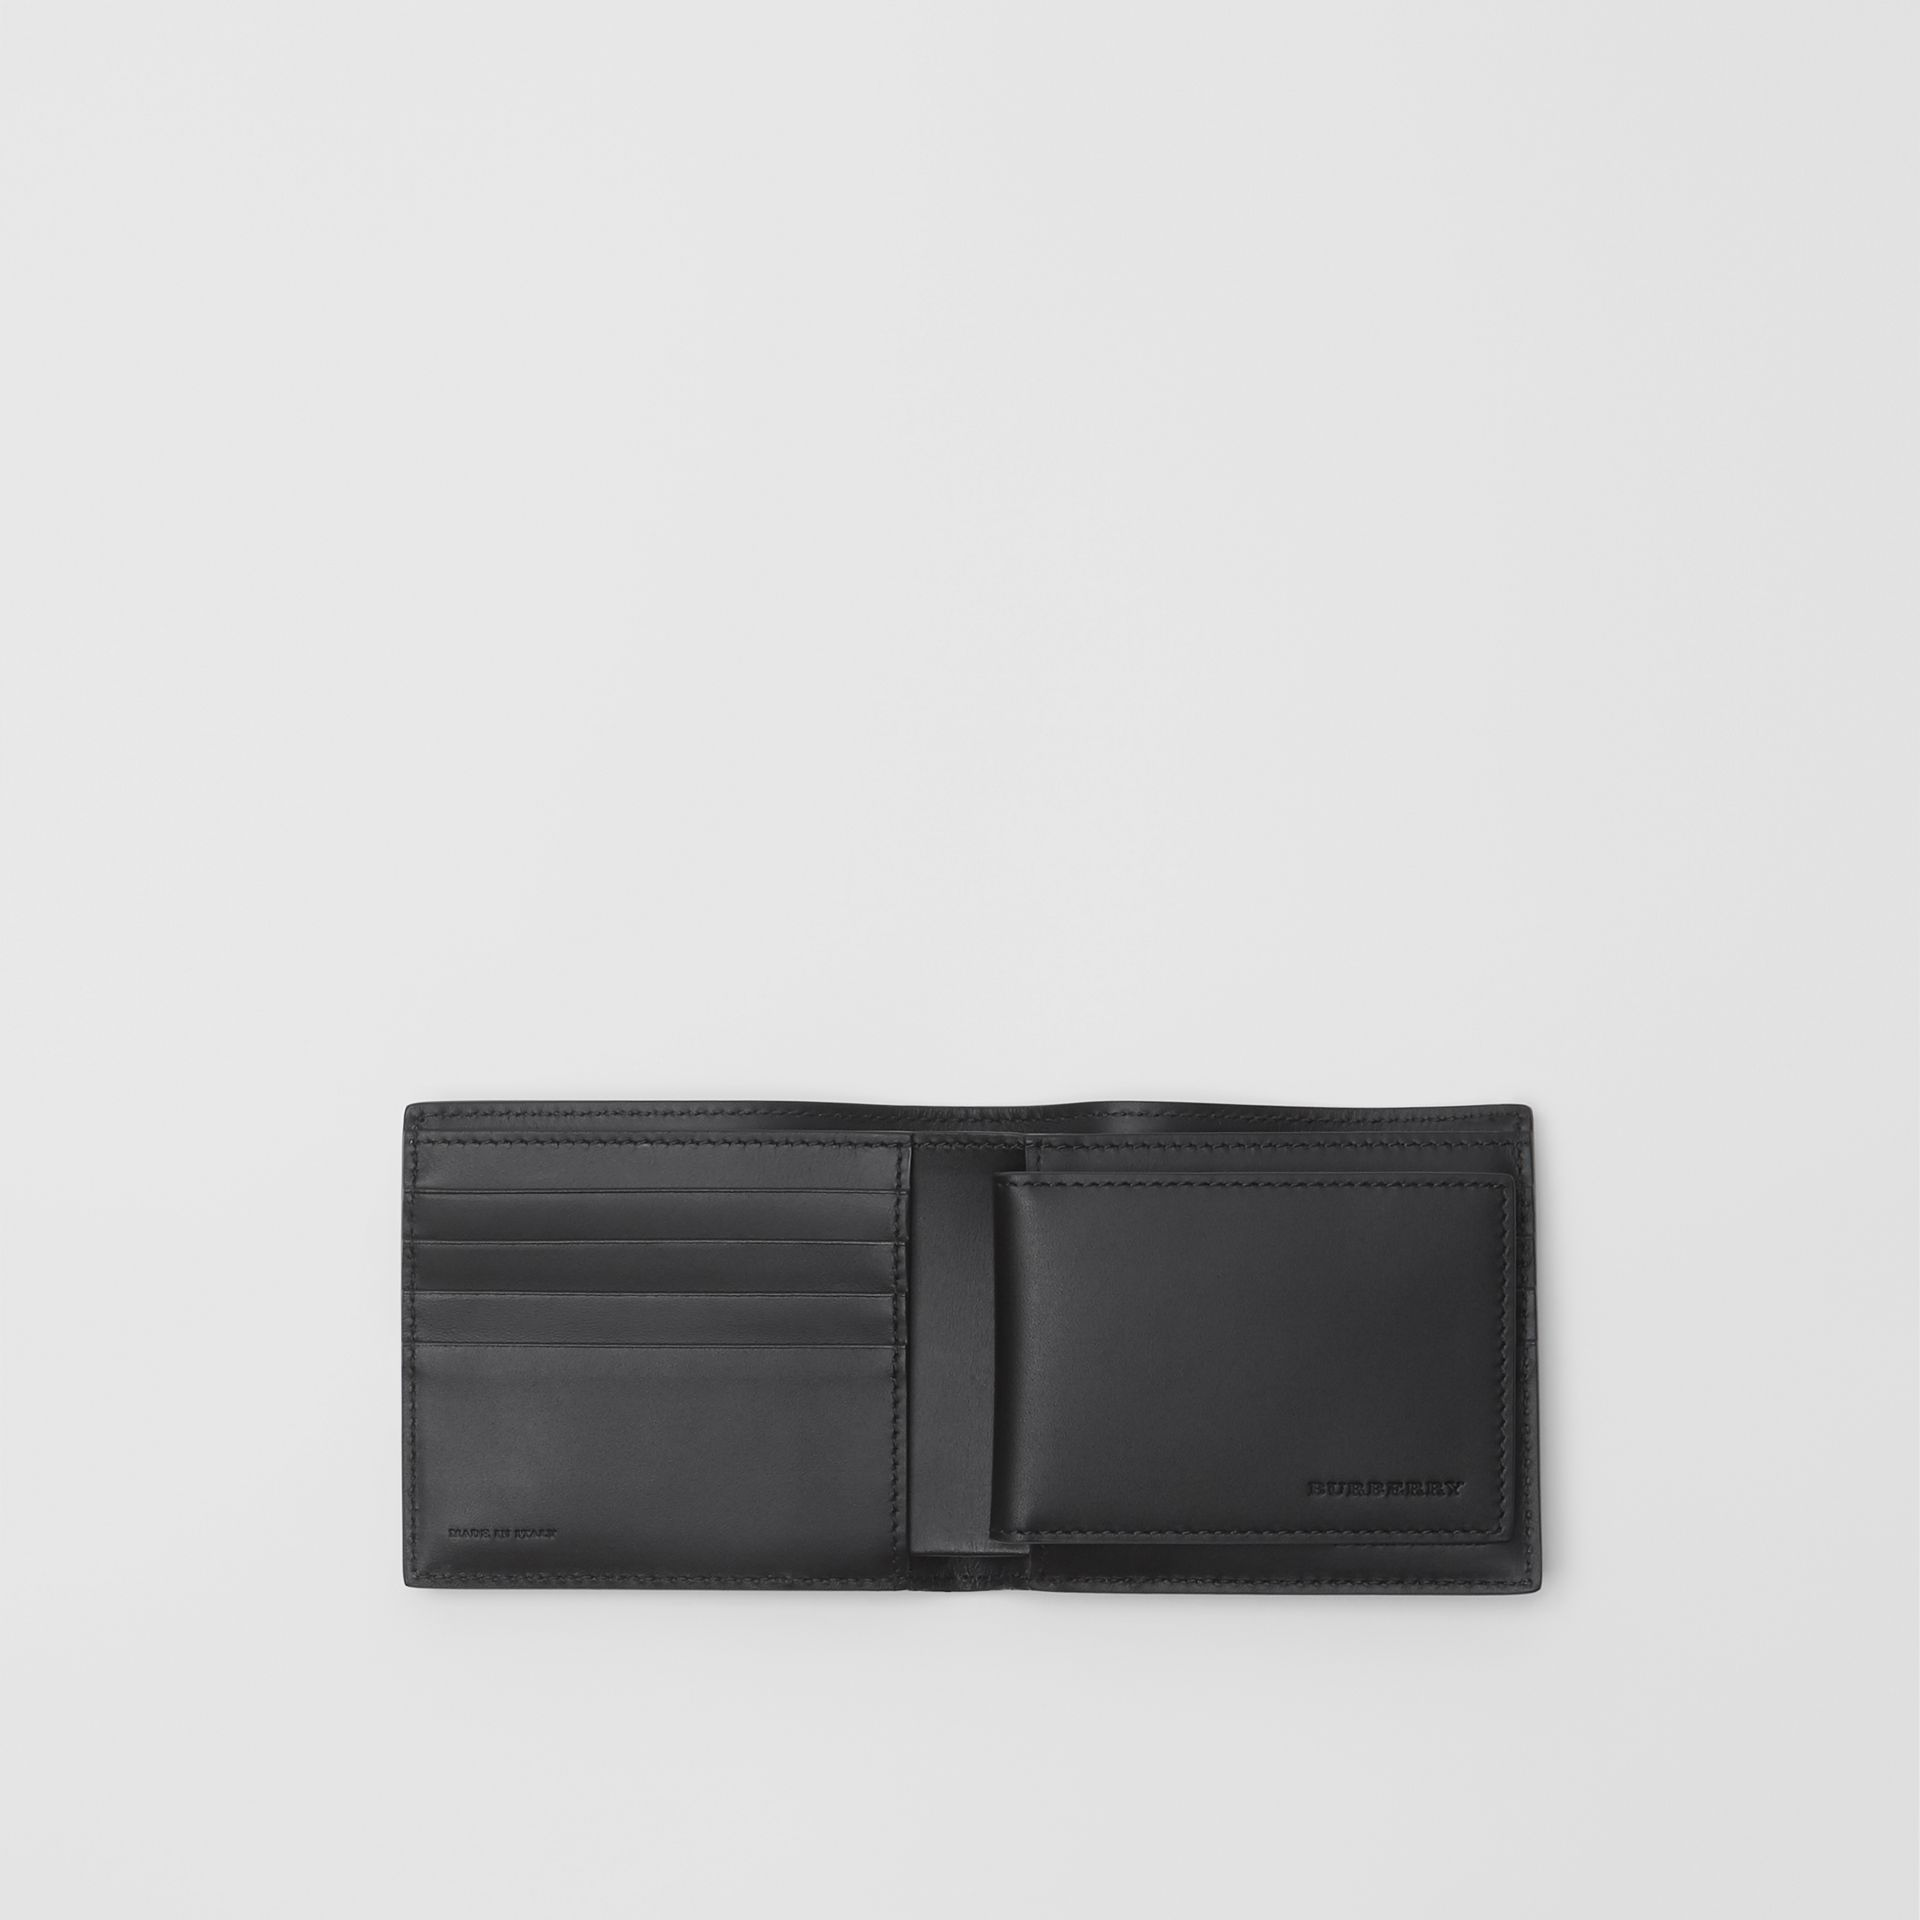 London Leather Bifold Wallet with ID Card Case in Navy - Men | Burberry Australia - gallery image 2